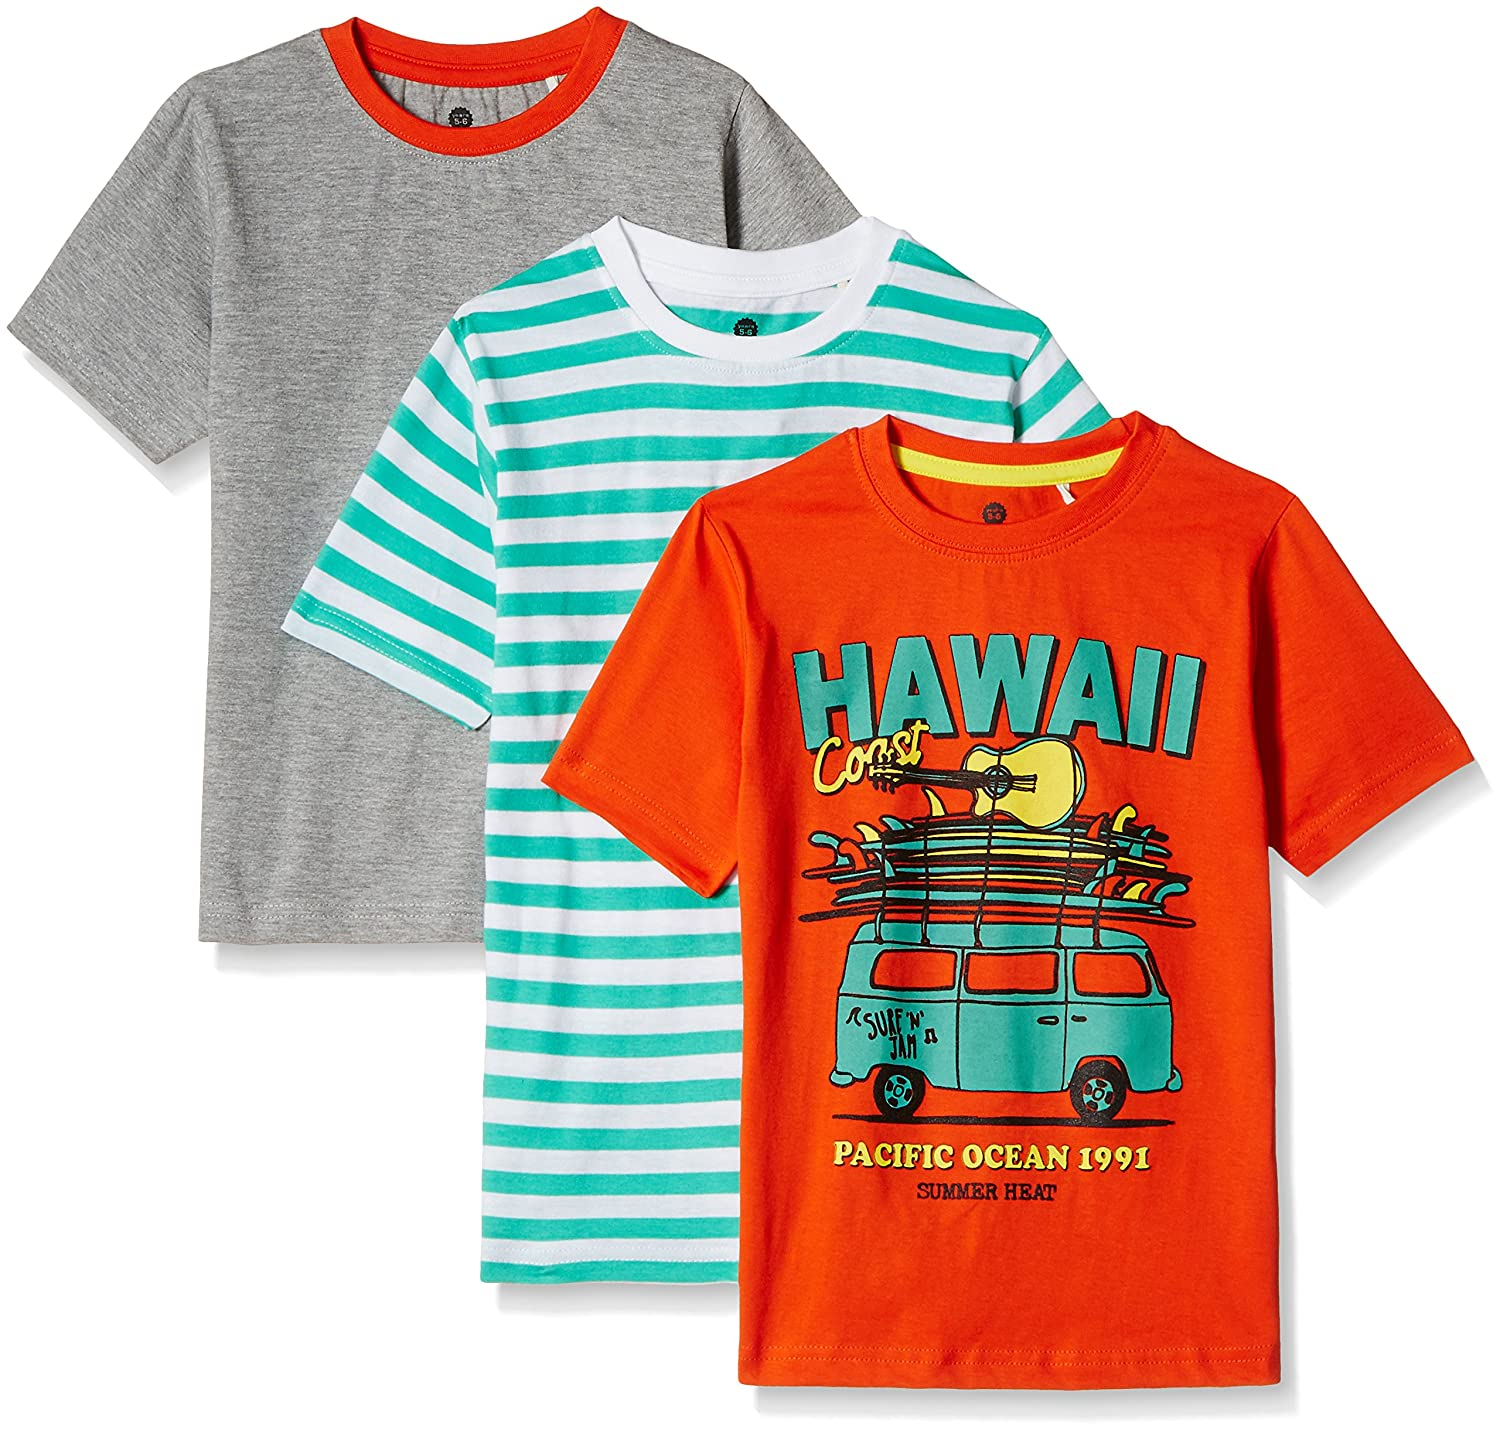 Cloth Theory Boys' T-Shirt (Pack of 3) from Rs 300 at Amazon